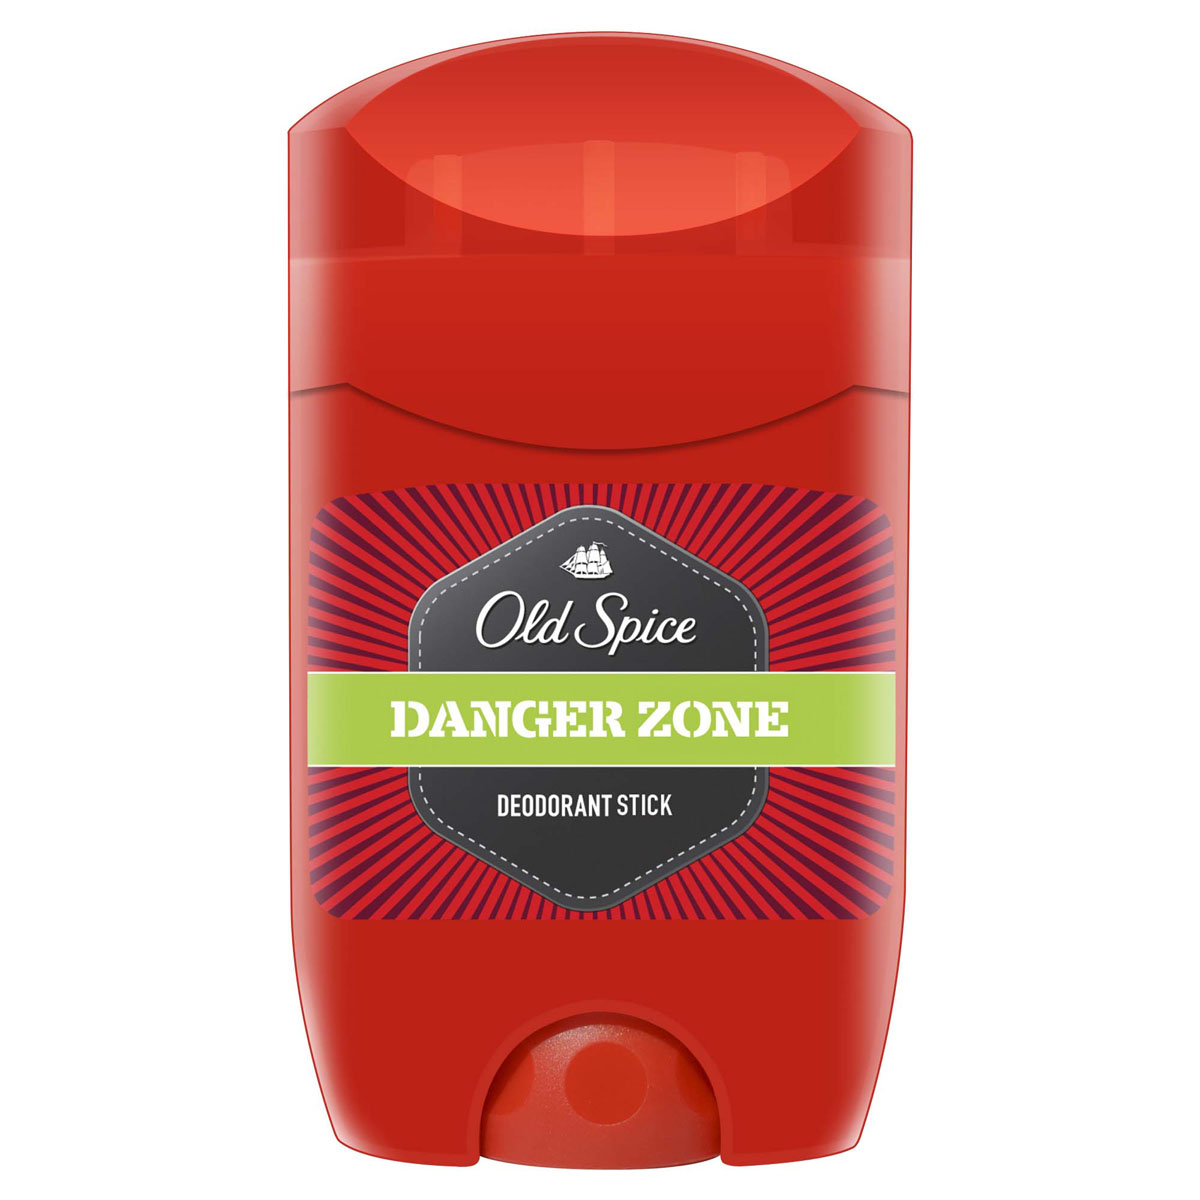 Old Spice Дезодорант-стик Danger Zone, 50 мл